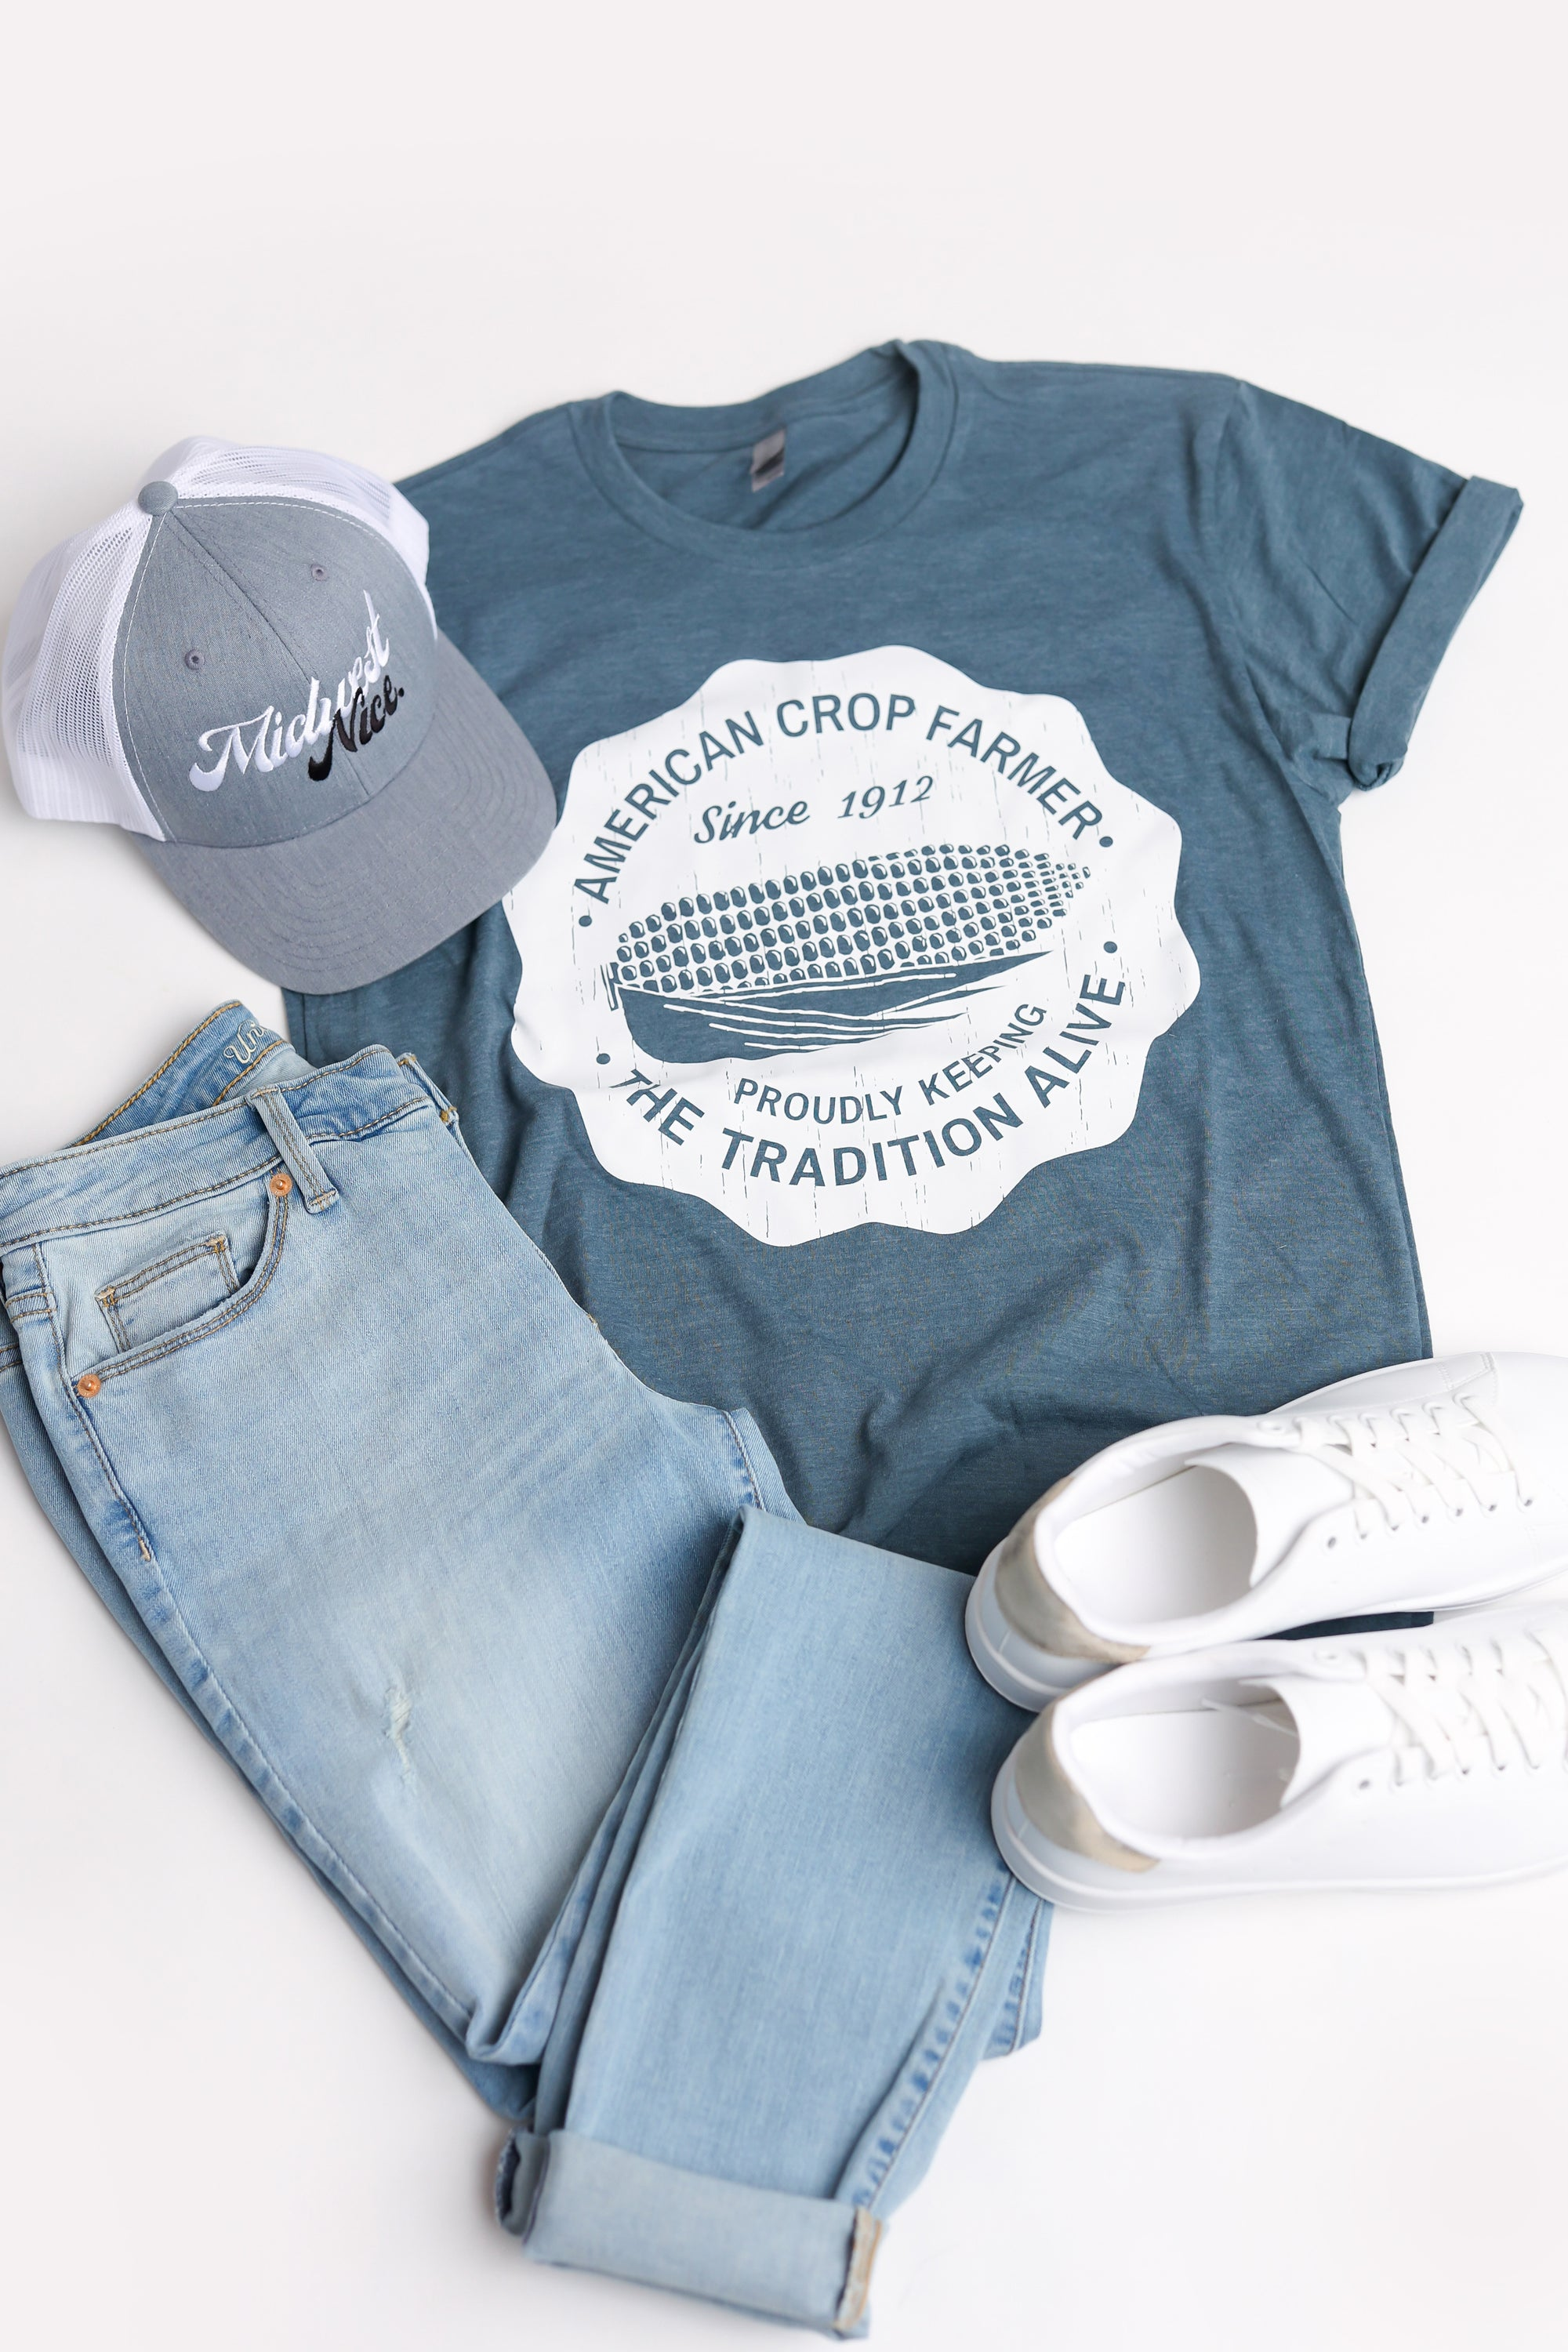 American Crop Farmer Tee - Blue